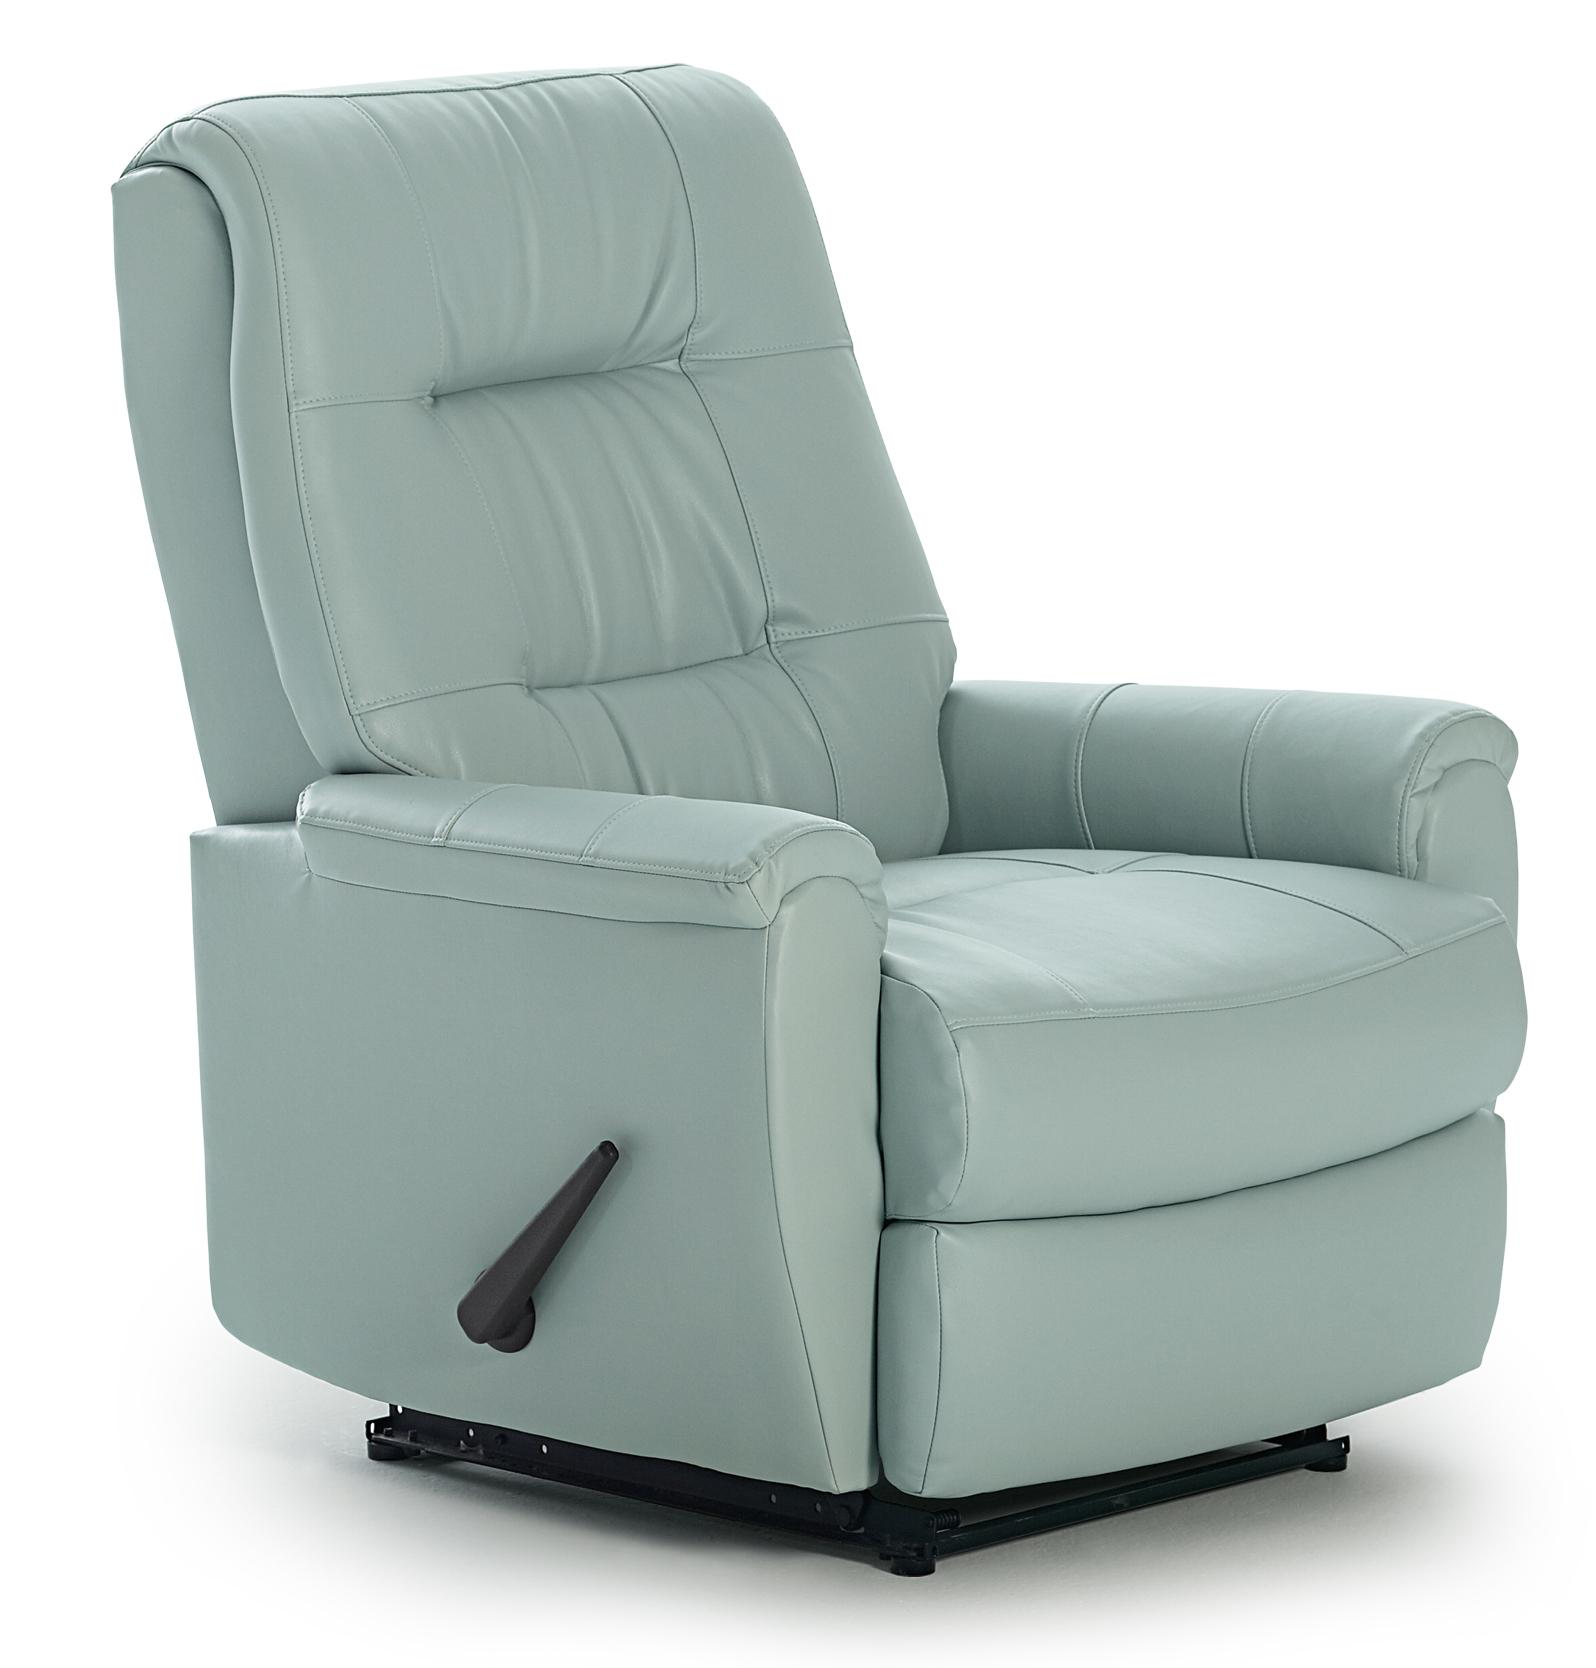 Felicia Rocker Recliner with Button-Tufted Back  sc 1 st  Wolf Furniture & Felicia Rocker Recliner with Button-Tufted Back by Best Home ... islam-shia.org